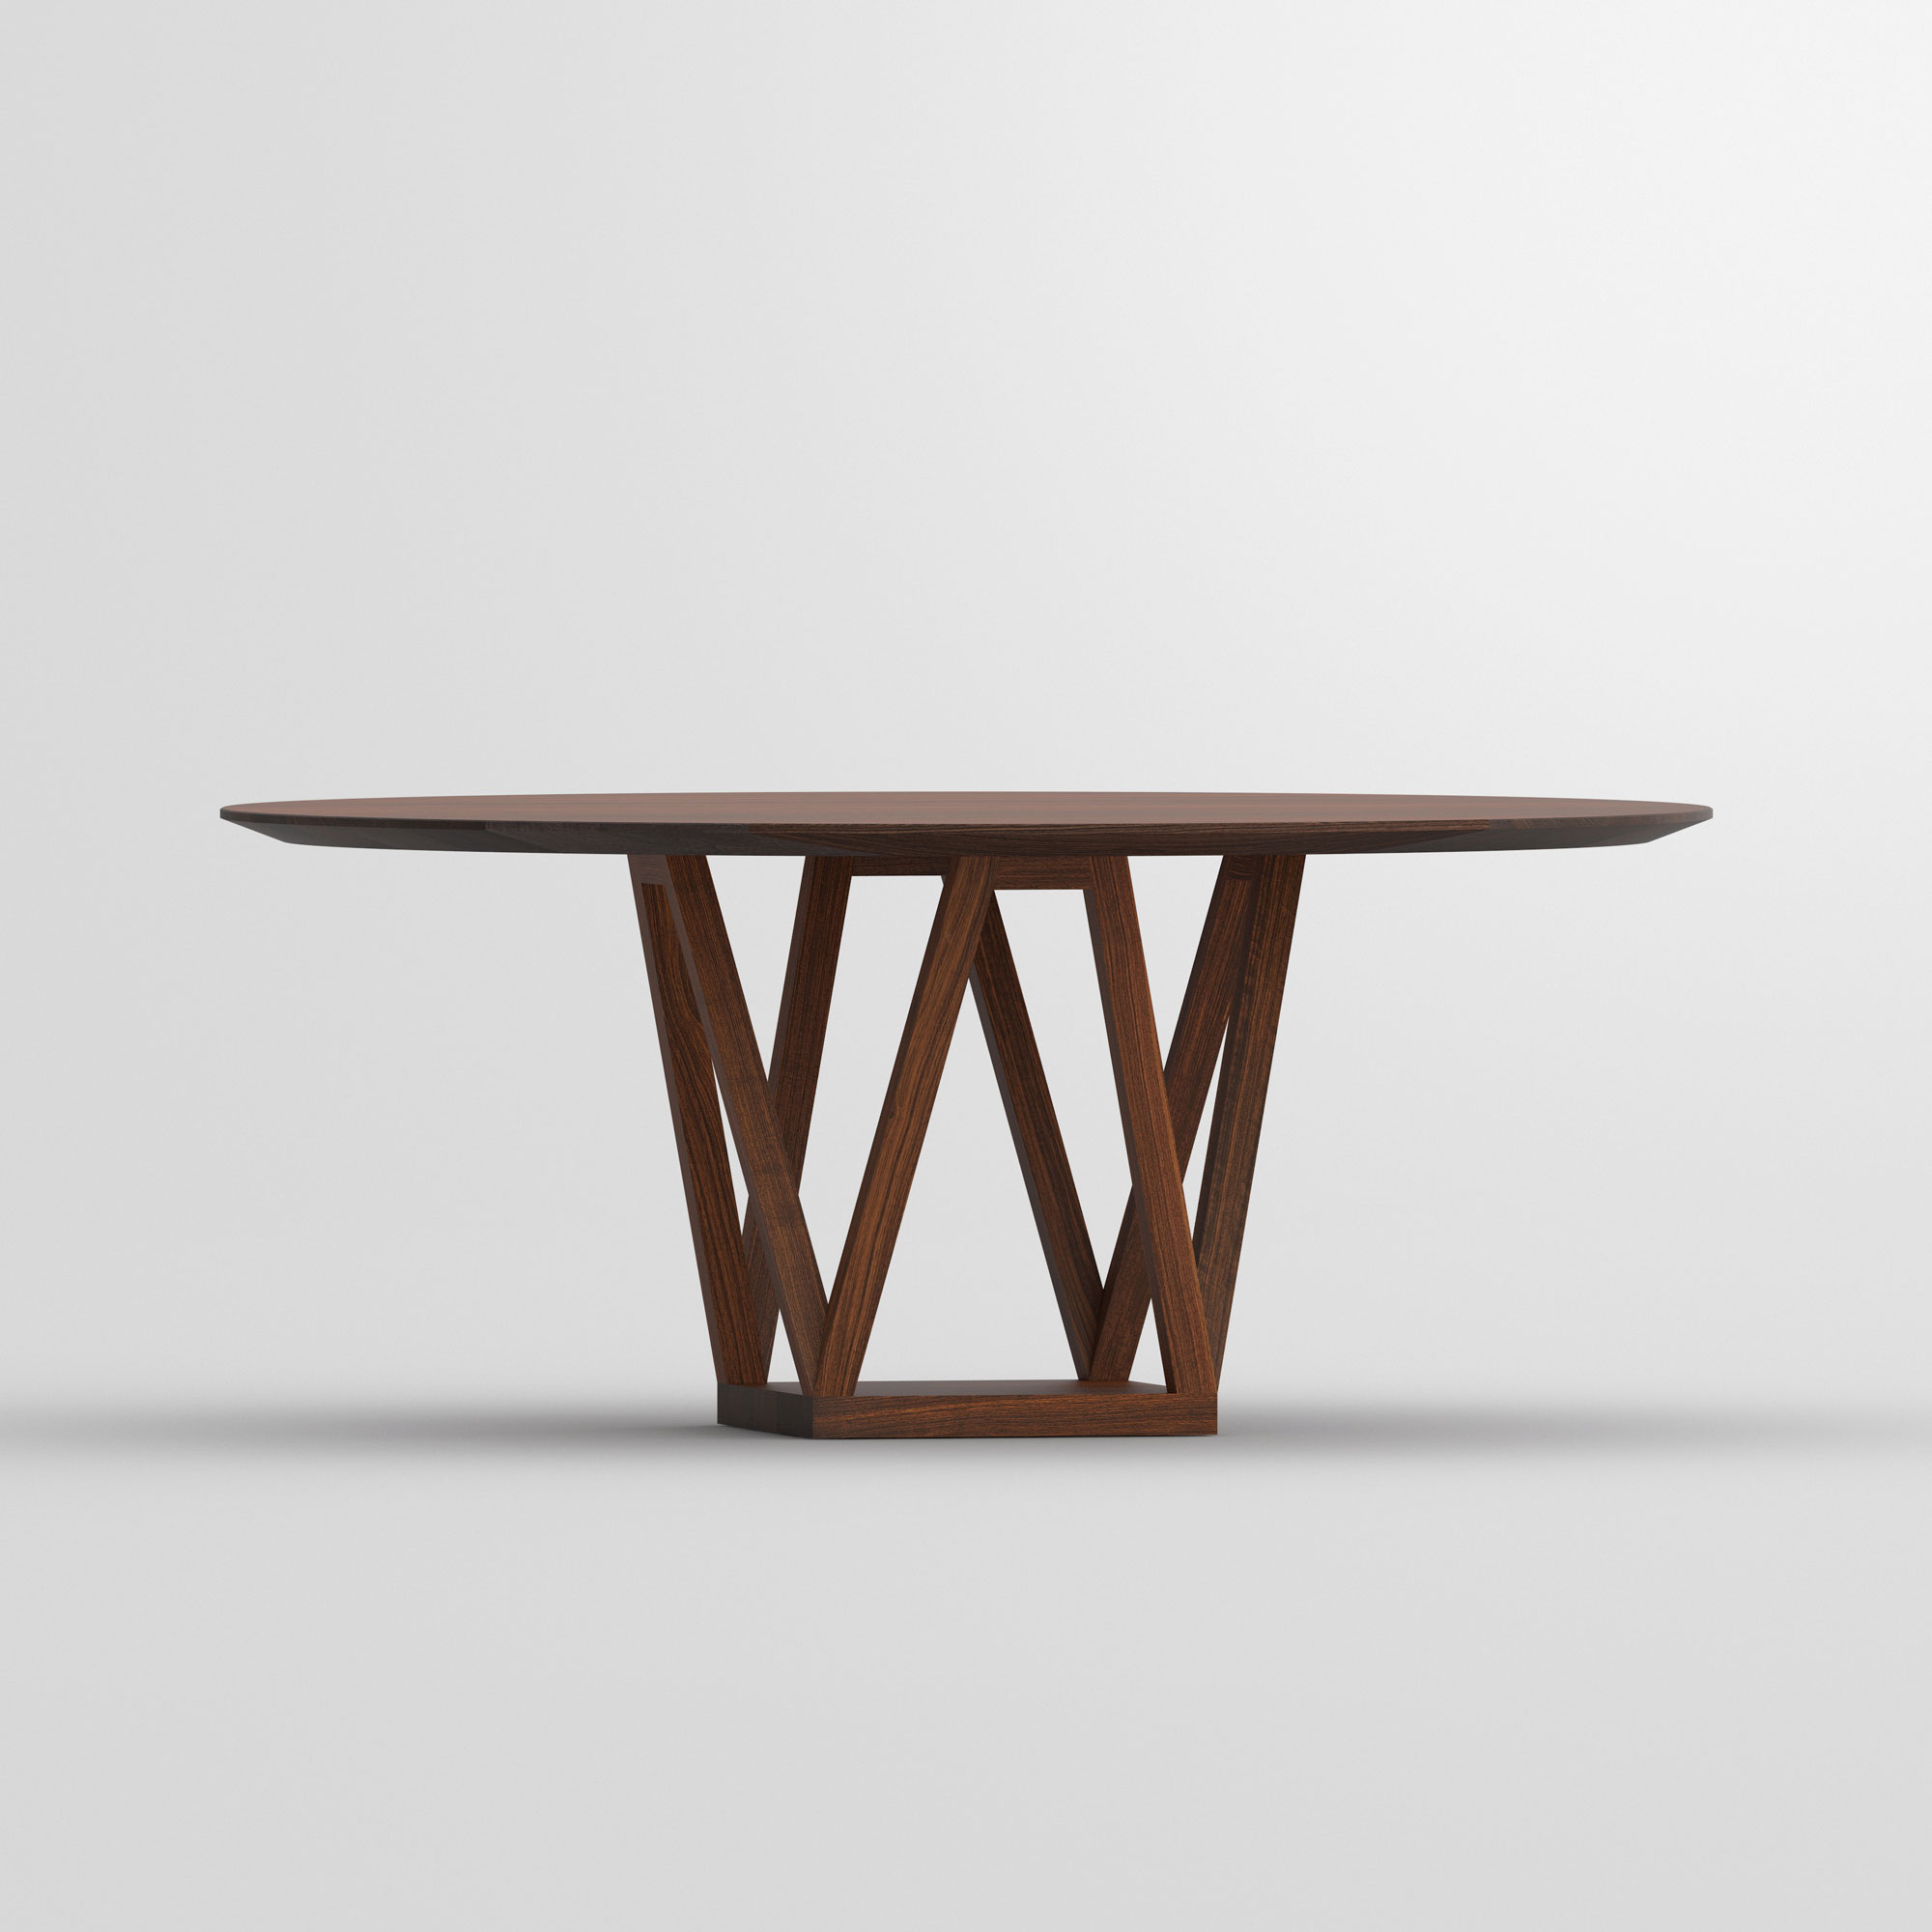 Round Designer Table CREO cam2 custom made in solid wood by vitamin design